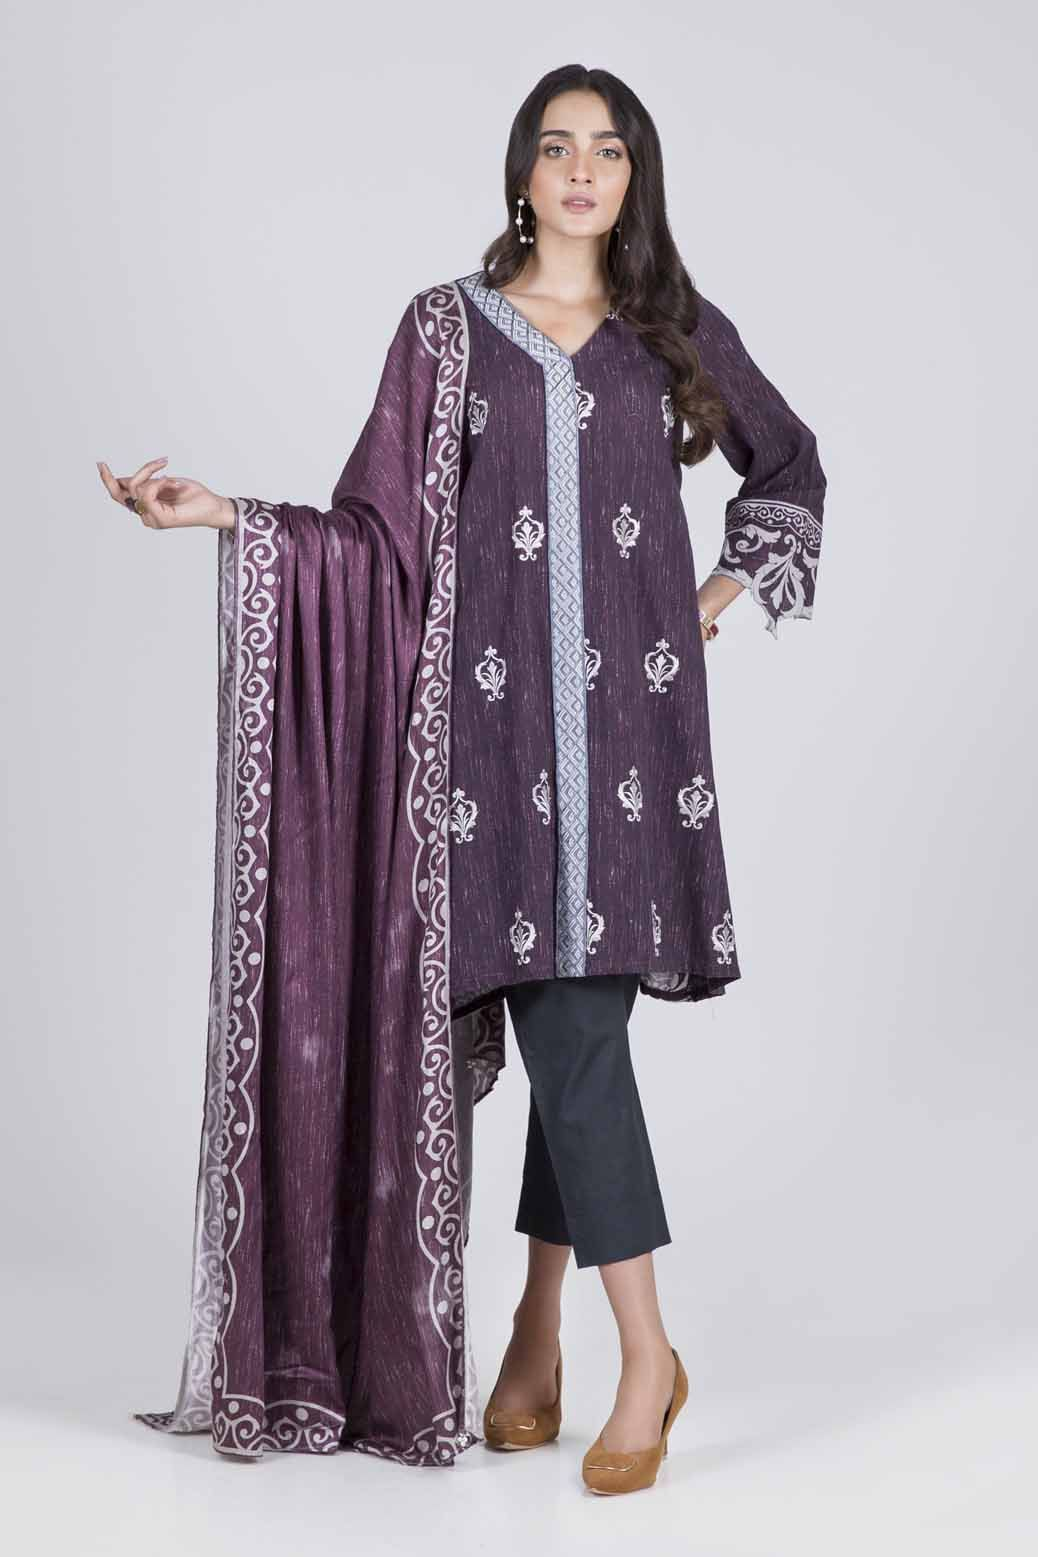 Bonanza Satrangi - PURPLE RUSTIC LOOK A - 3 PC - RWT93P004A